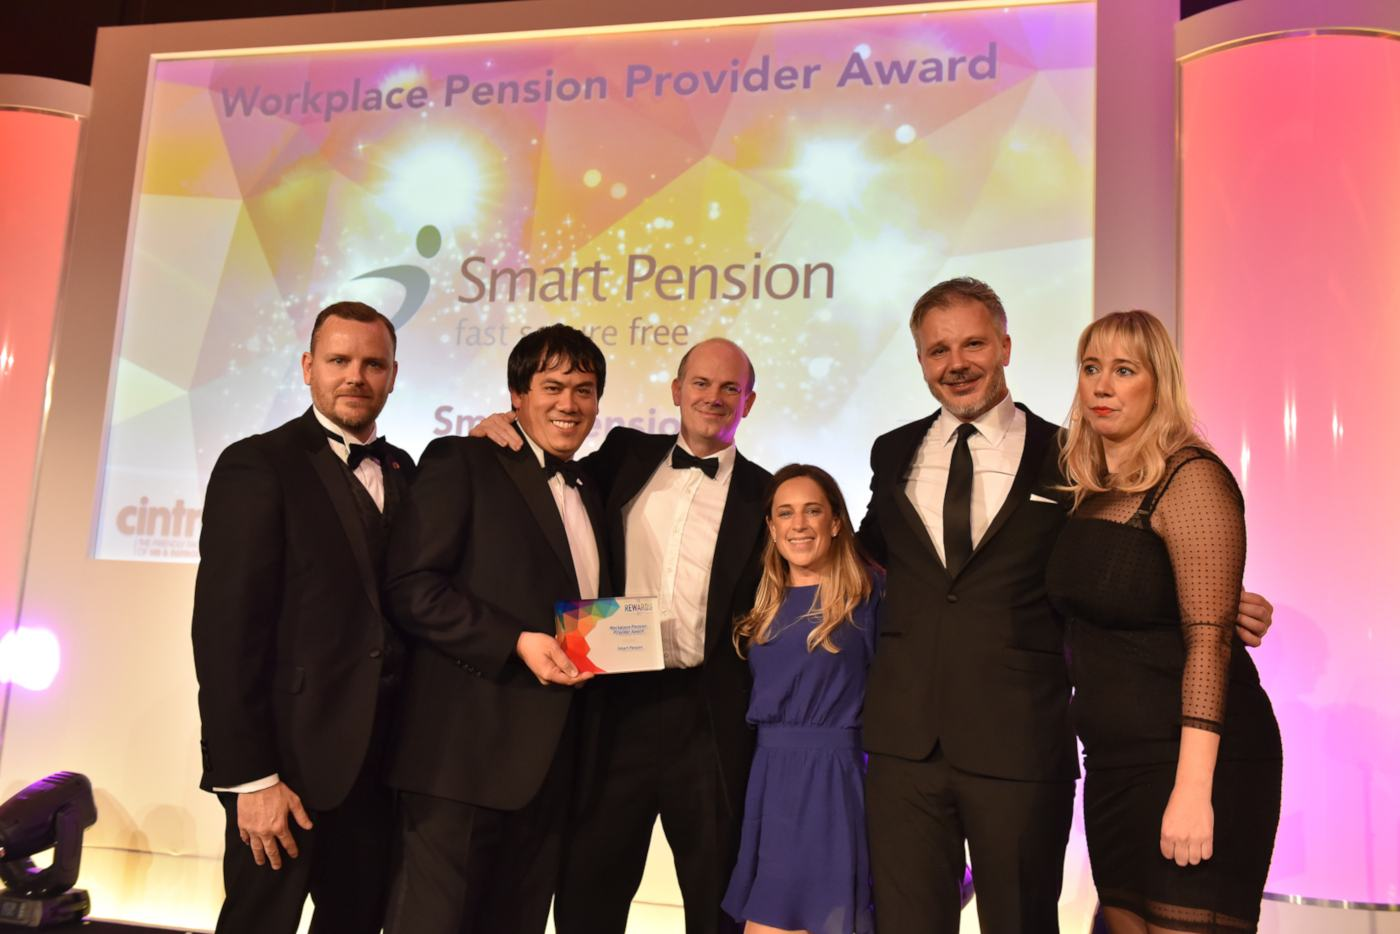 Smart Pension wins best workplace pension award